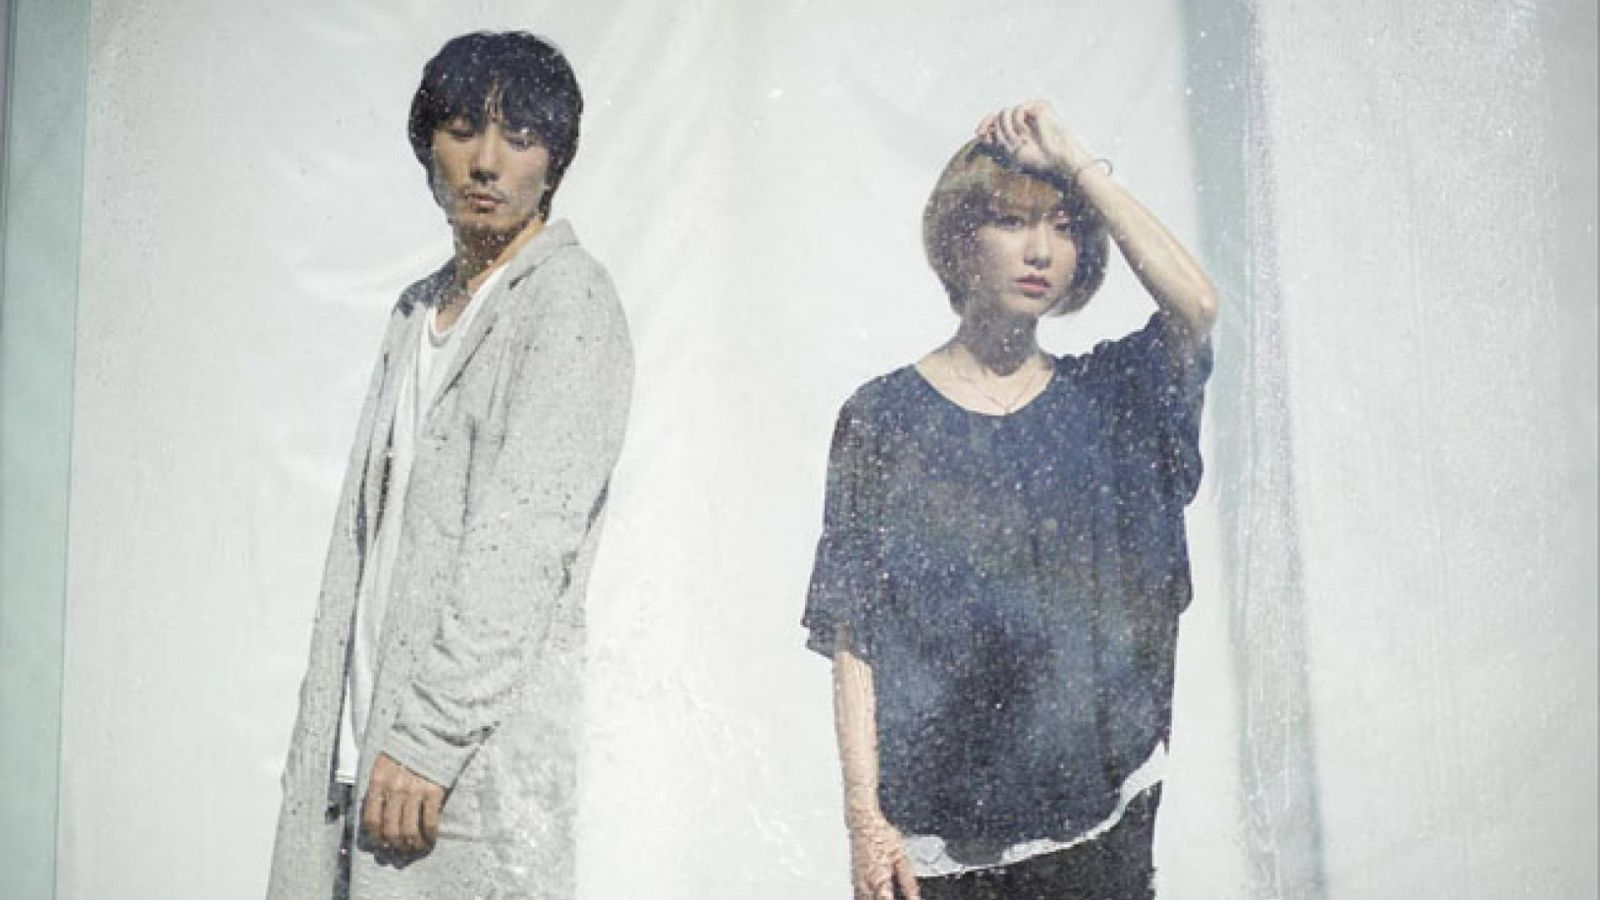 moumoon © 2015 avex music creative Inc. Provided by JPU Records.